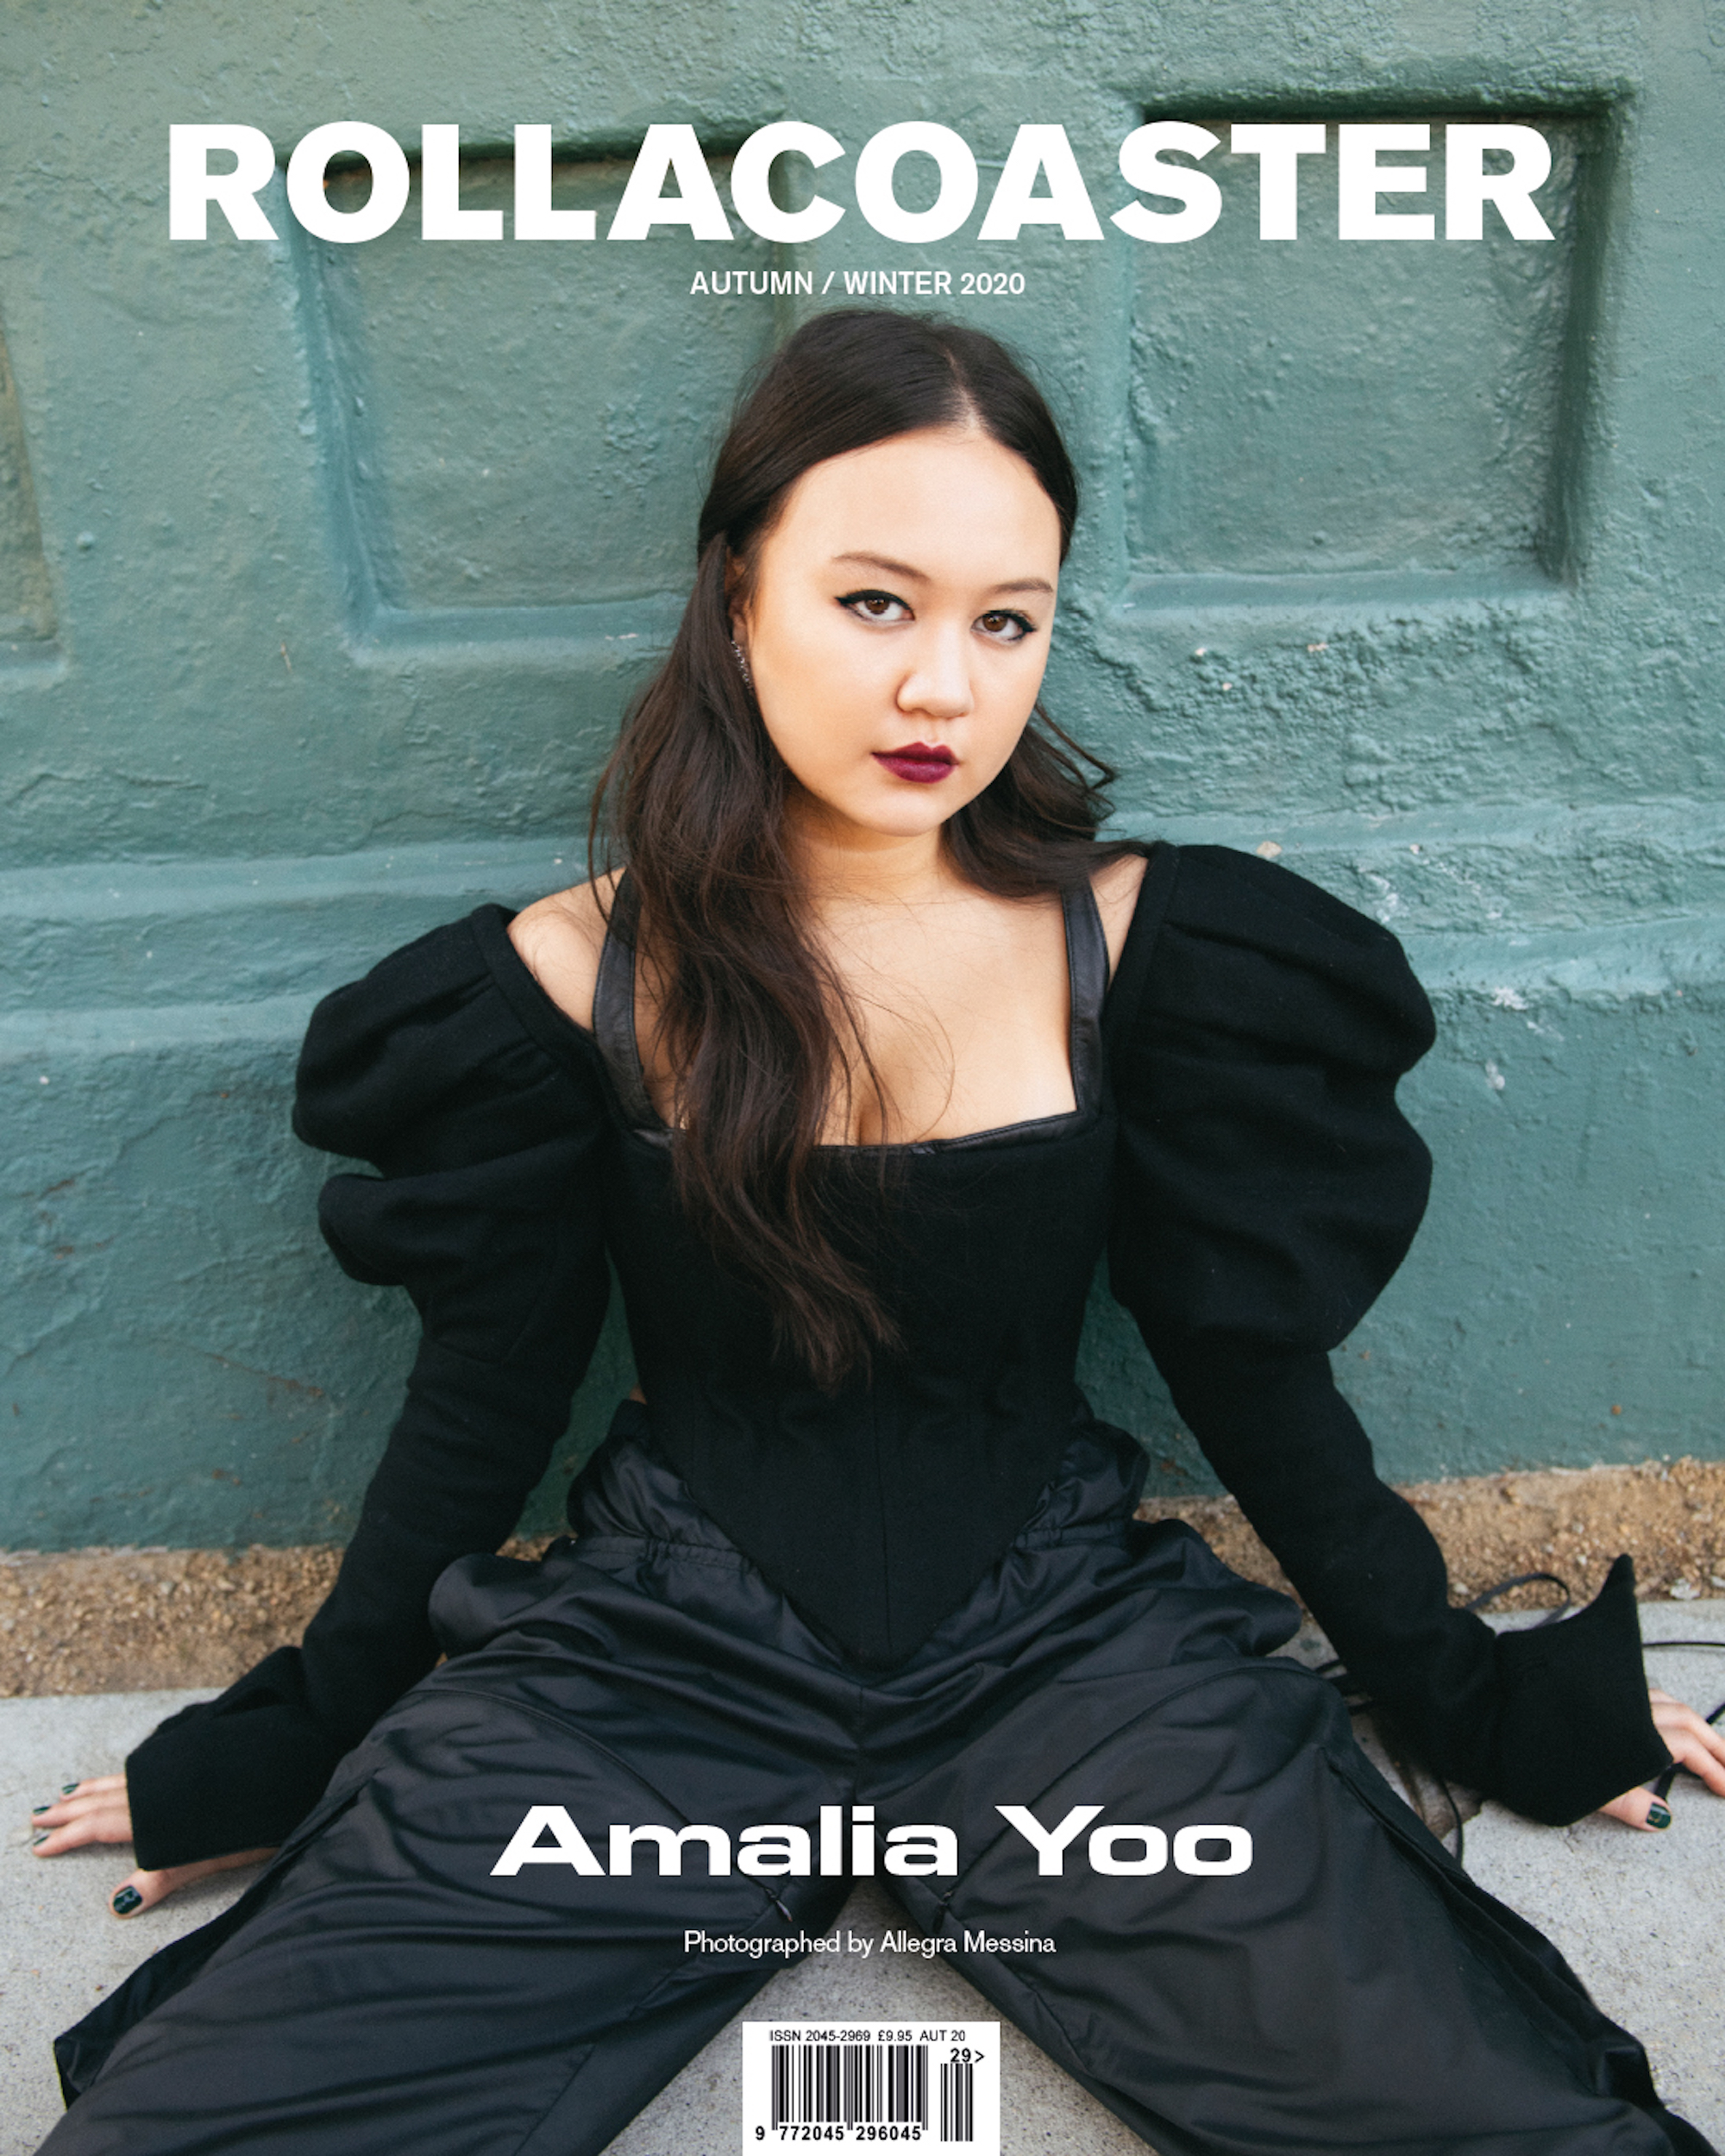 Amalia Yoo Covers: Rollacoaster Magazine Autumn/ Winter 2020